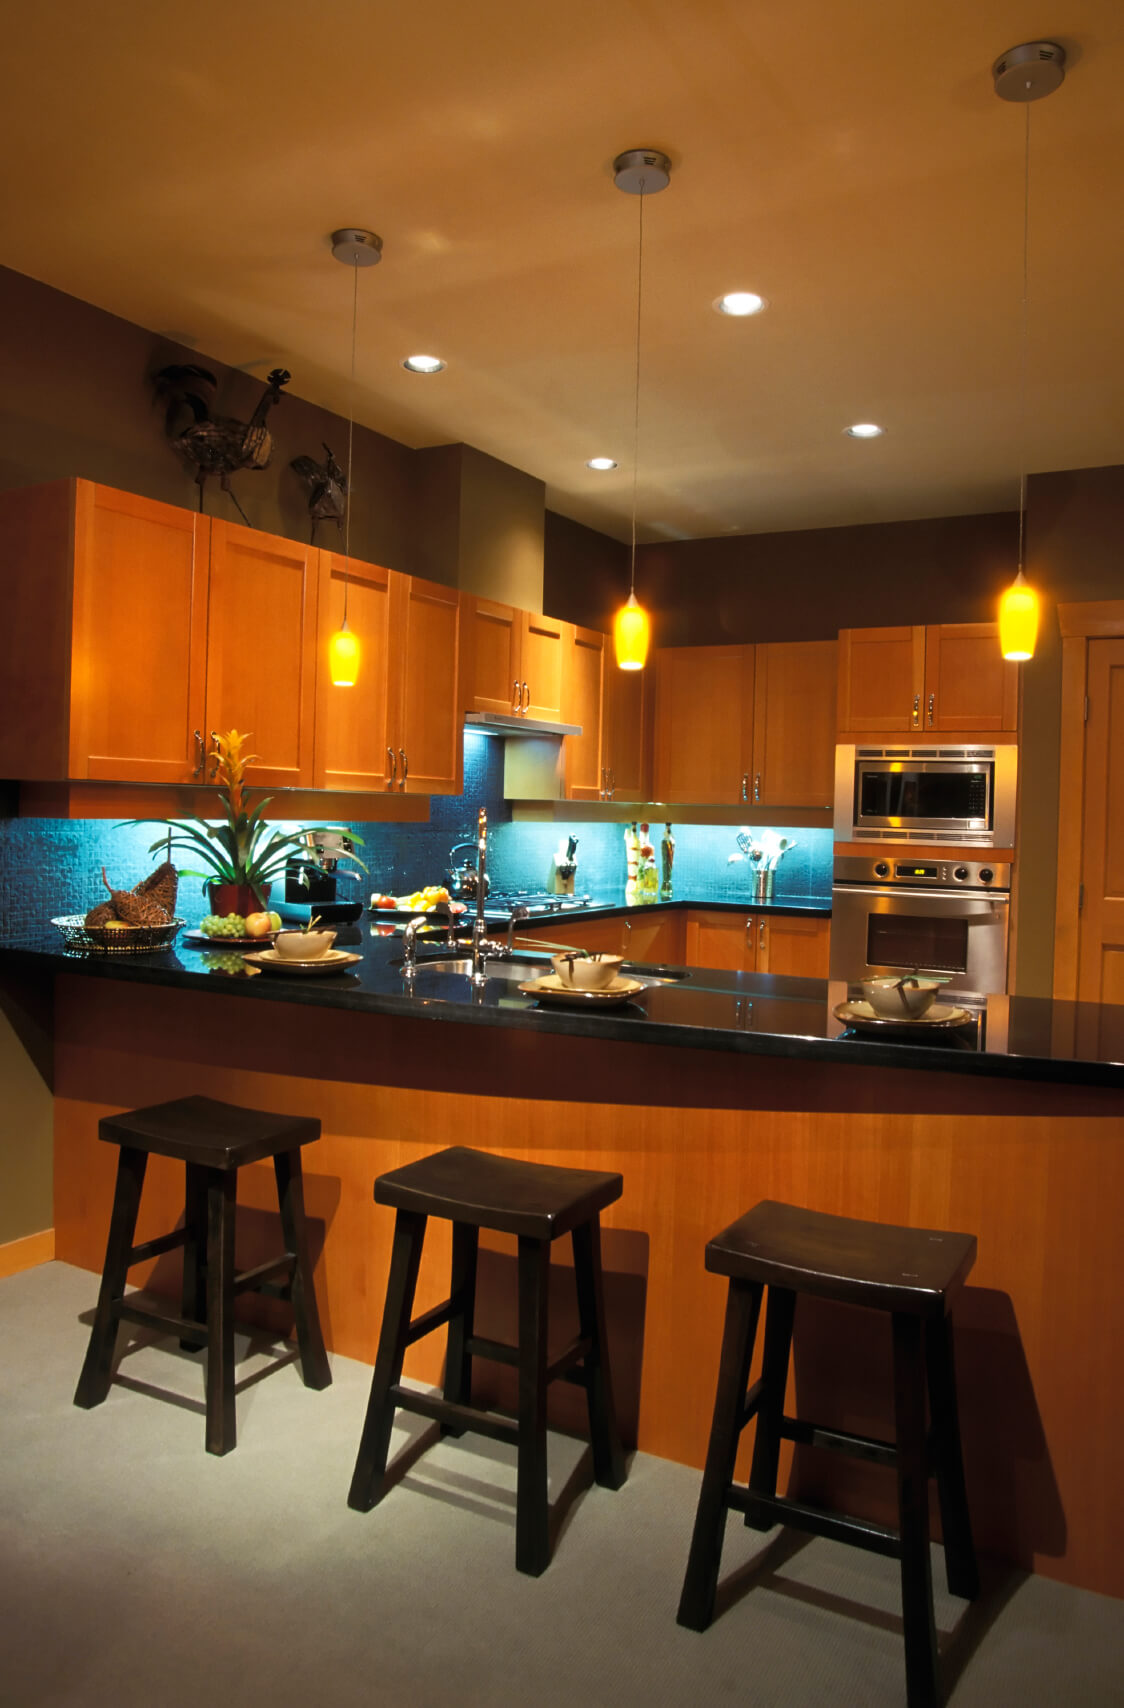 5 striking kitchen lighting combinations photo source homestratosphere workwithnaturefo